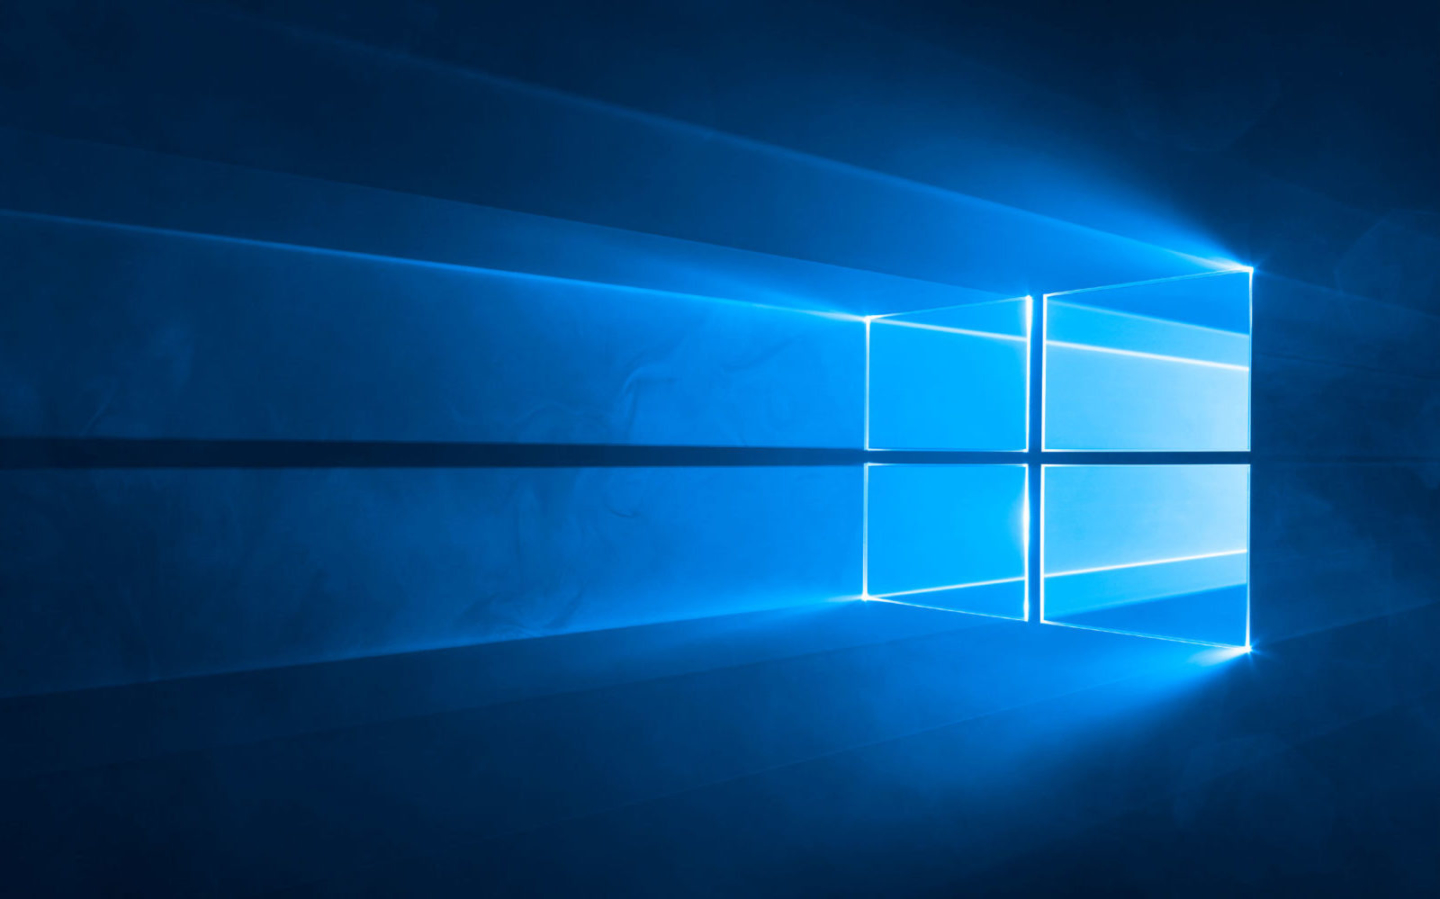 Windows 10 Wallpaper (Bild: Microsoft)